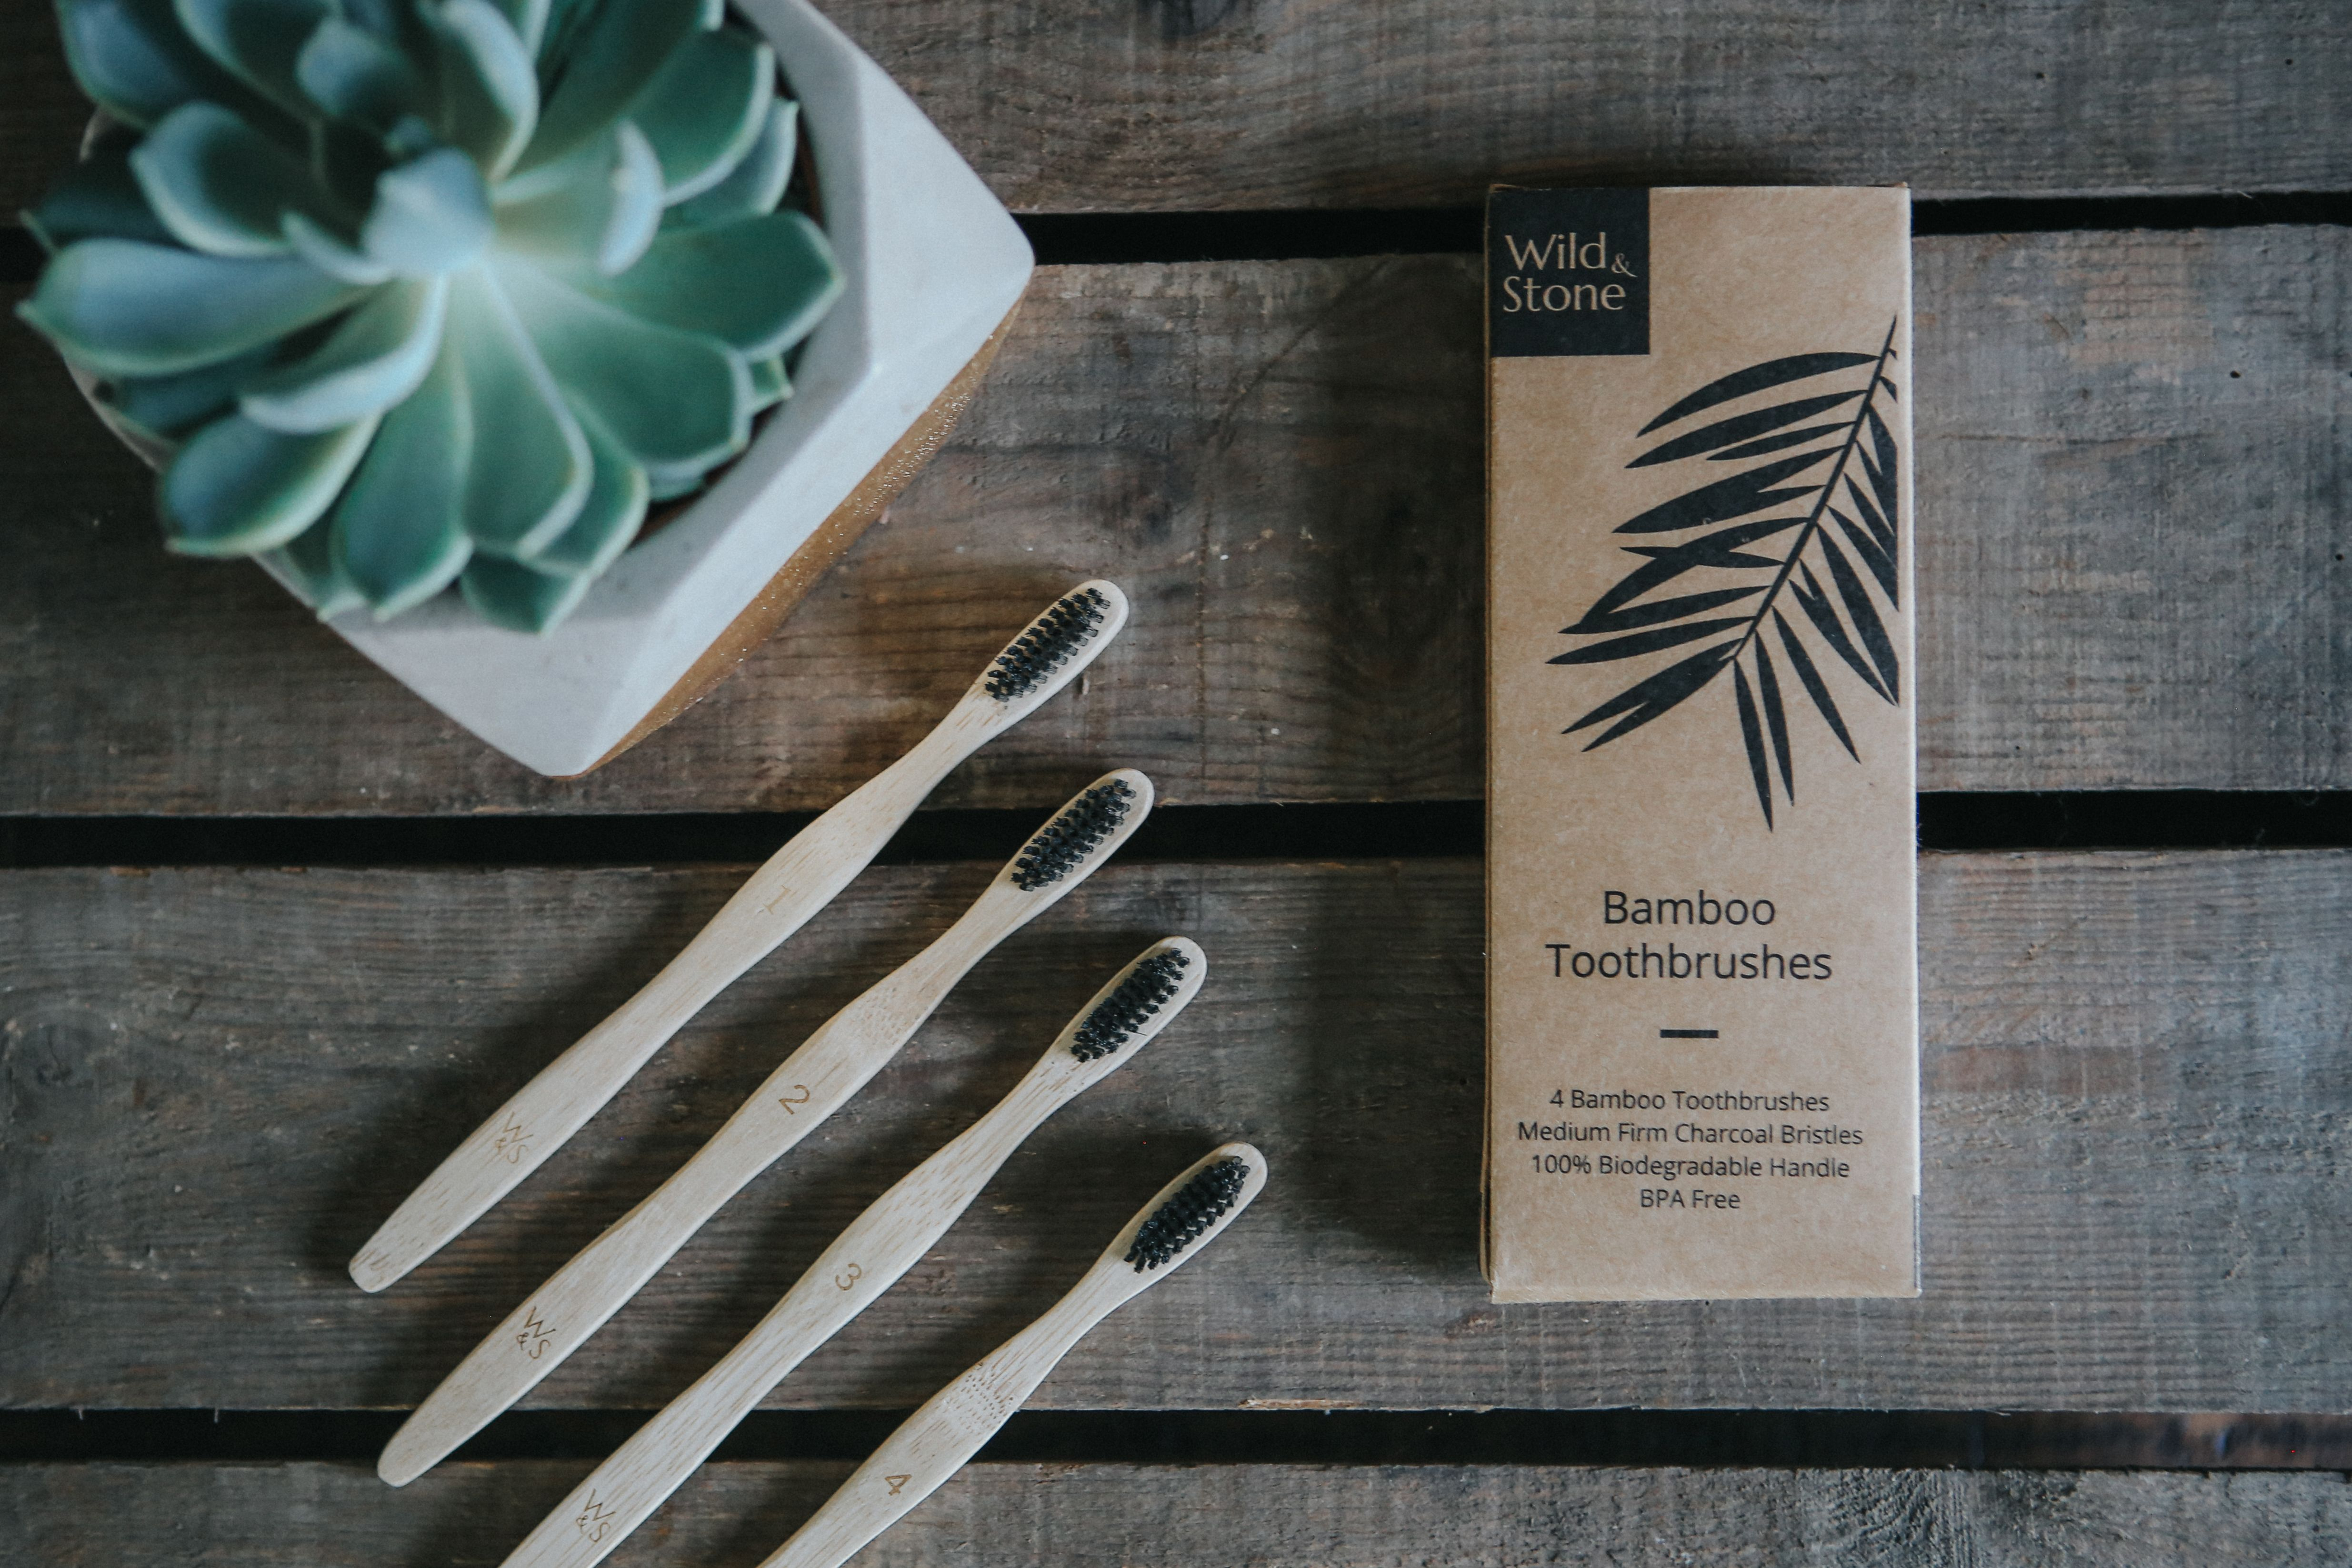 Bamboo toothbrushes from the company Wild & Stone